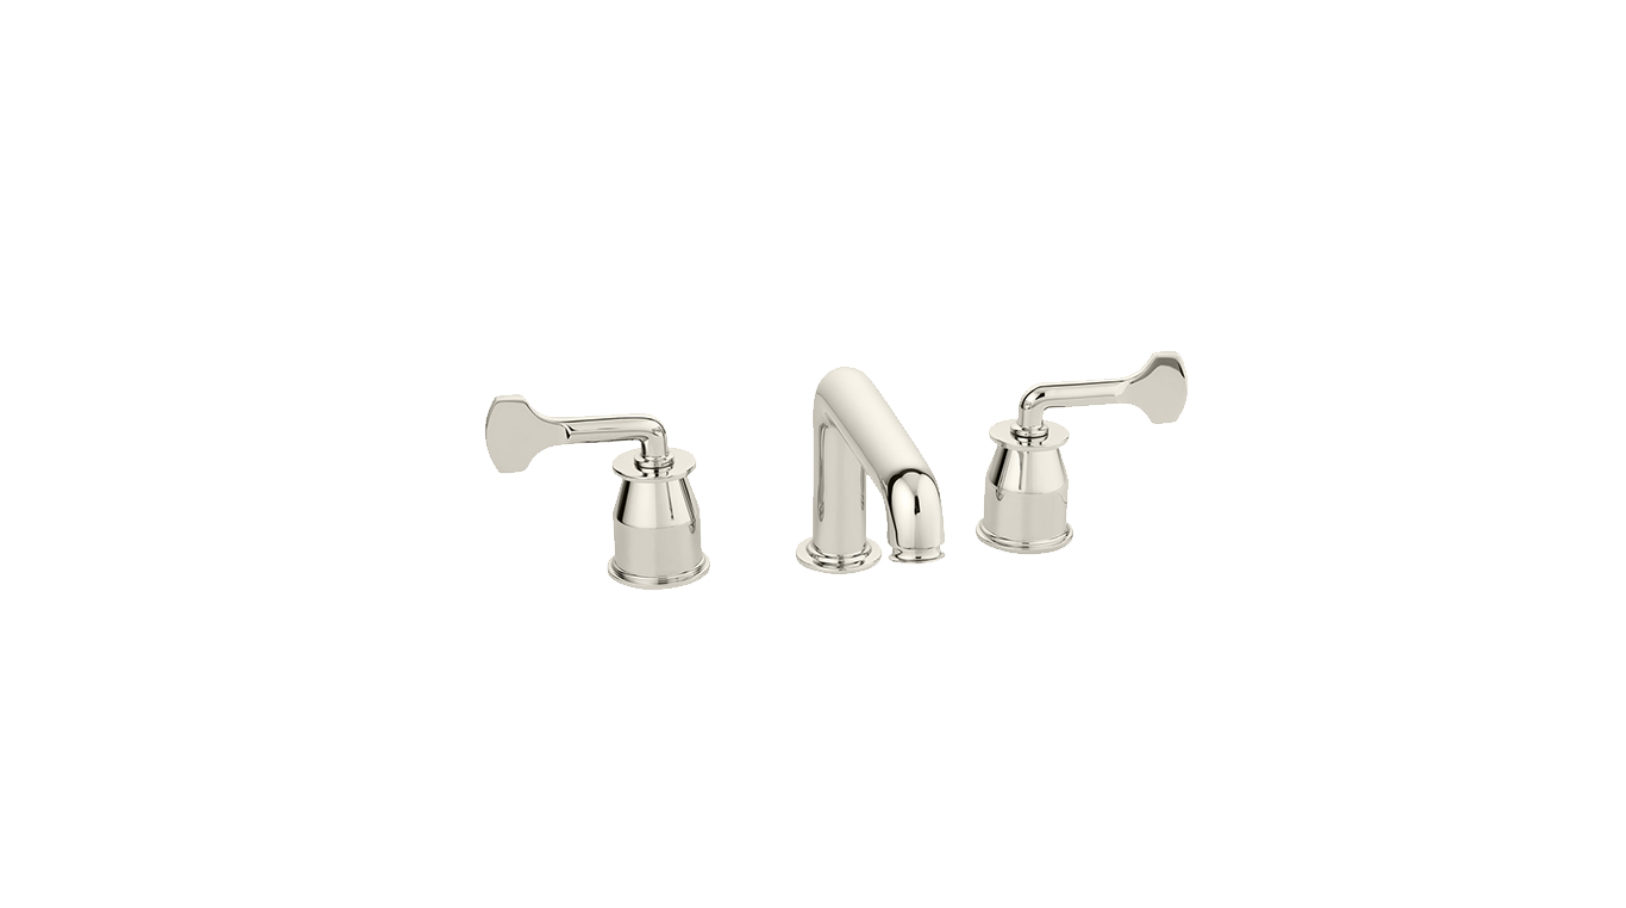 The Leawood Lever 3 Hole Basin Mixer